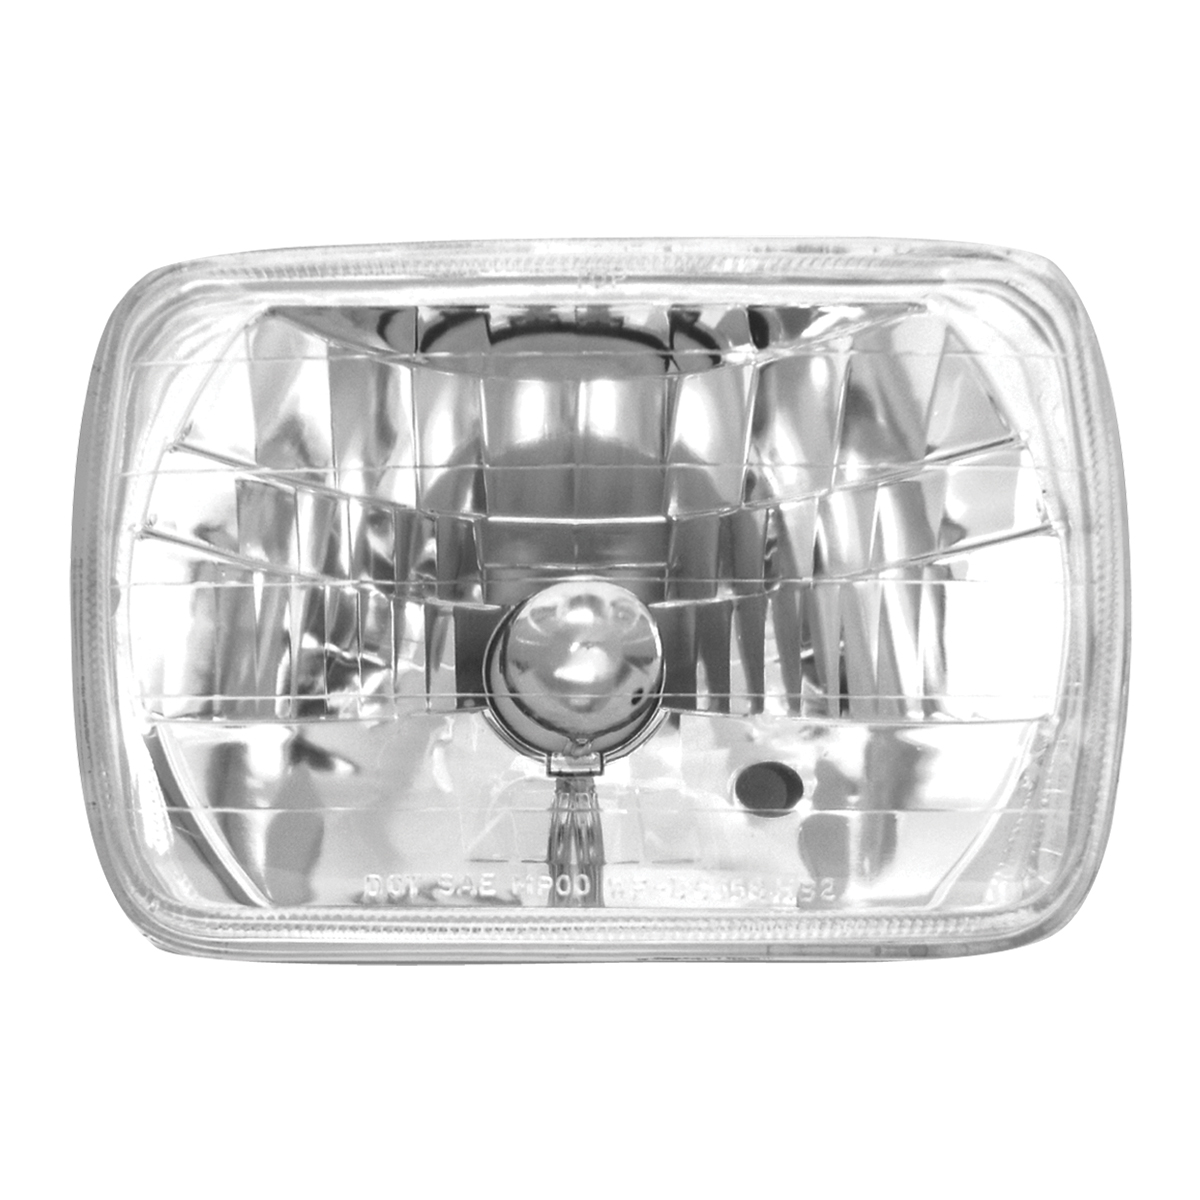 "#77390 (7.875"" x 5.6"") Rectangular Headlamp with #H4 Halogen Bulb"